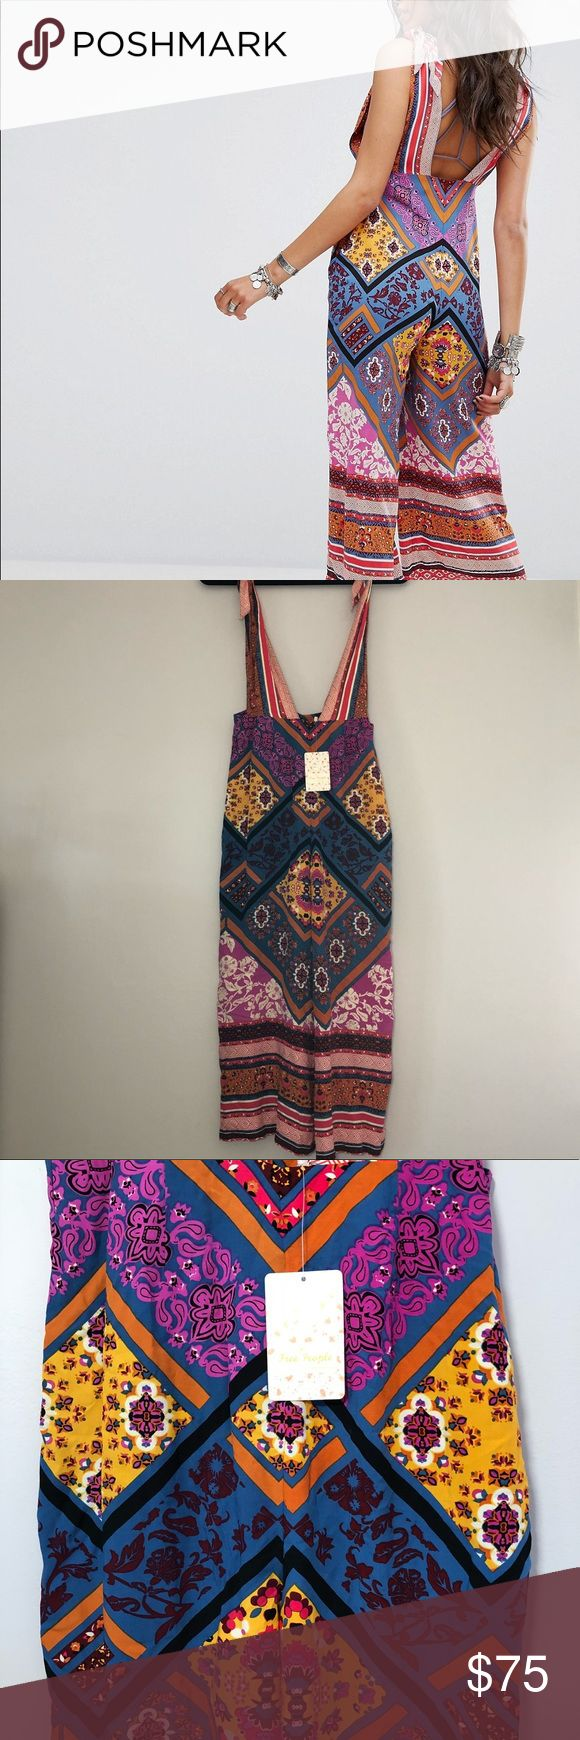 "NWT Free People Maritzah Multi-colored Jumper Sz 0 New with Tags! Gorgeous multicolored jumper. Size 0. Measurements are approximate: 16"" at top, which is adjustable with shoulder ties. 14"" from top of pant to crotch 22"" inseam 13"" across waist 18""across hips. #mc012 Free People Pants Jumpsuits & Rompers"